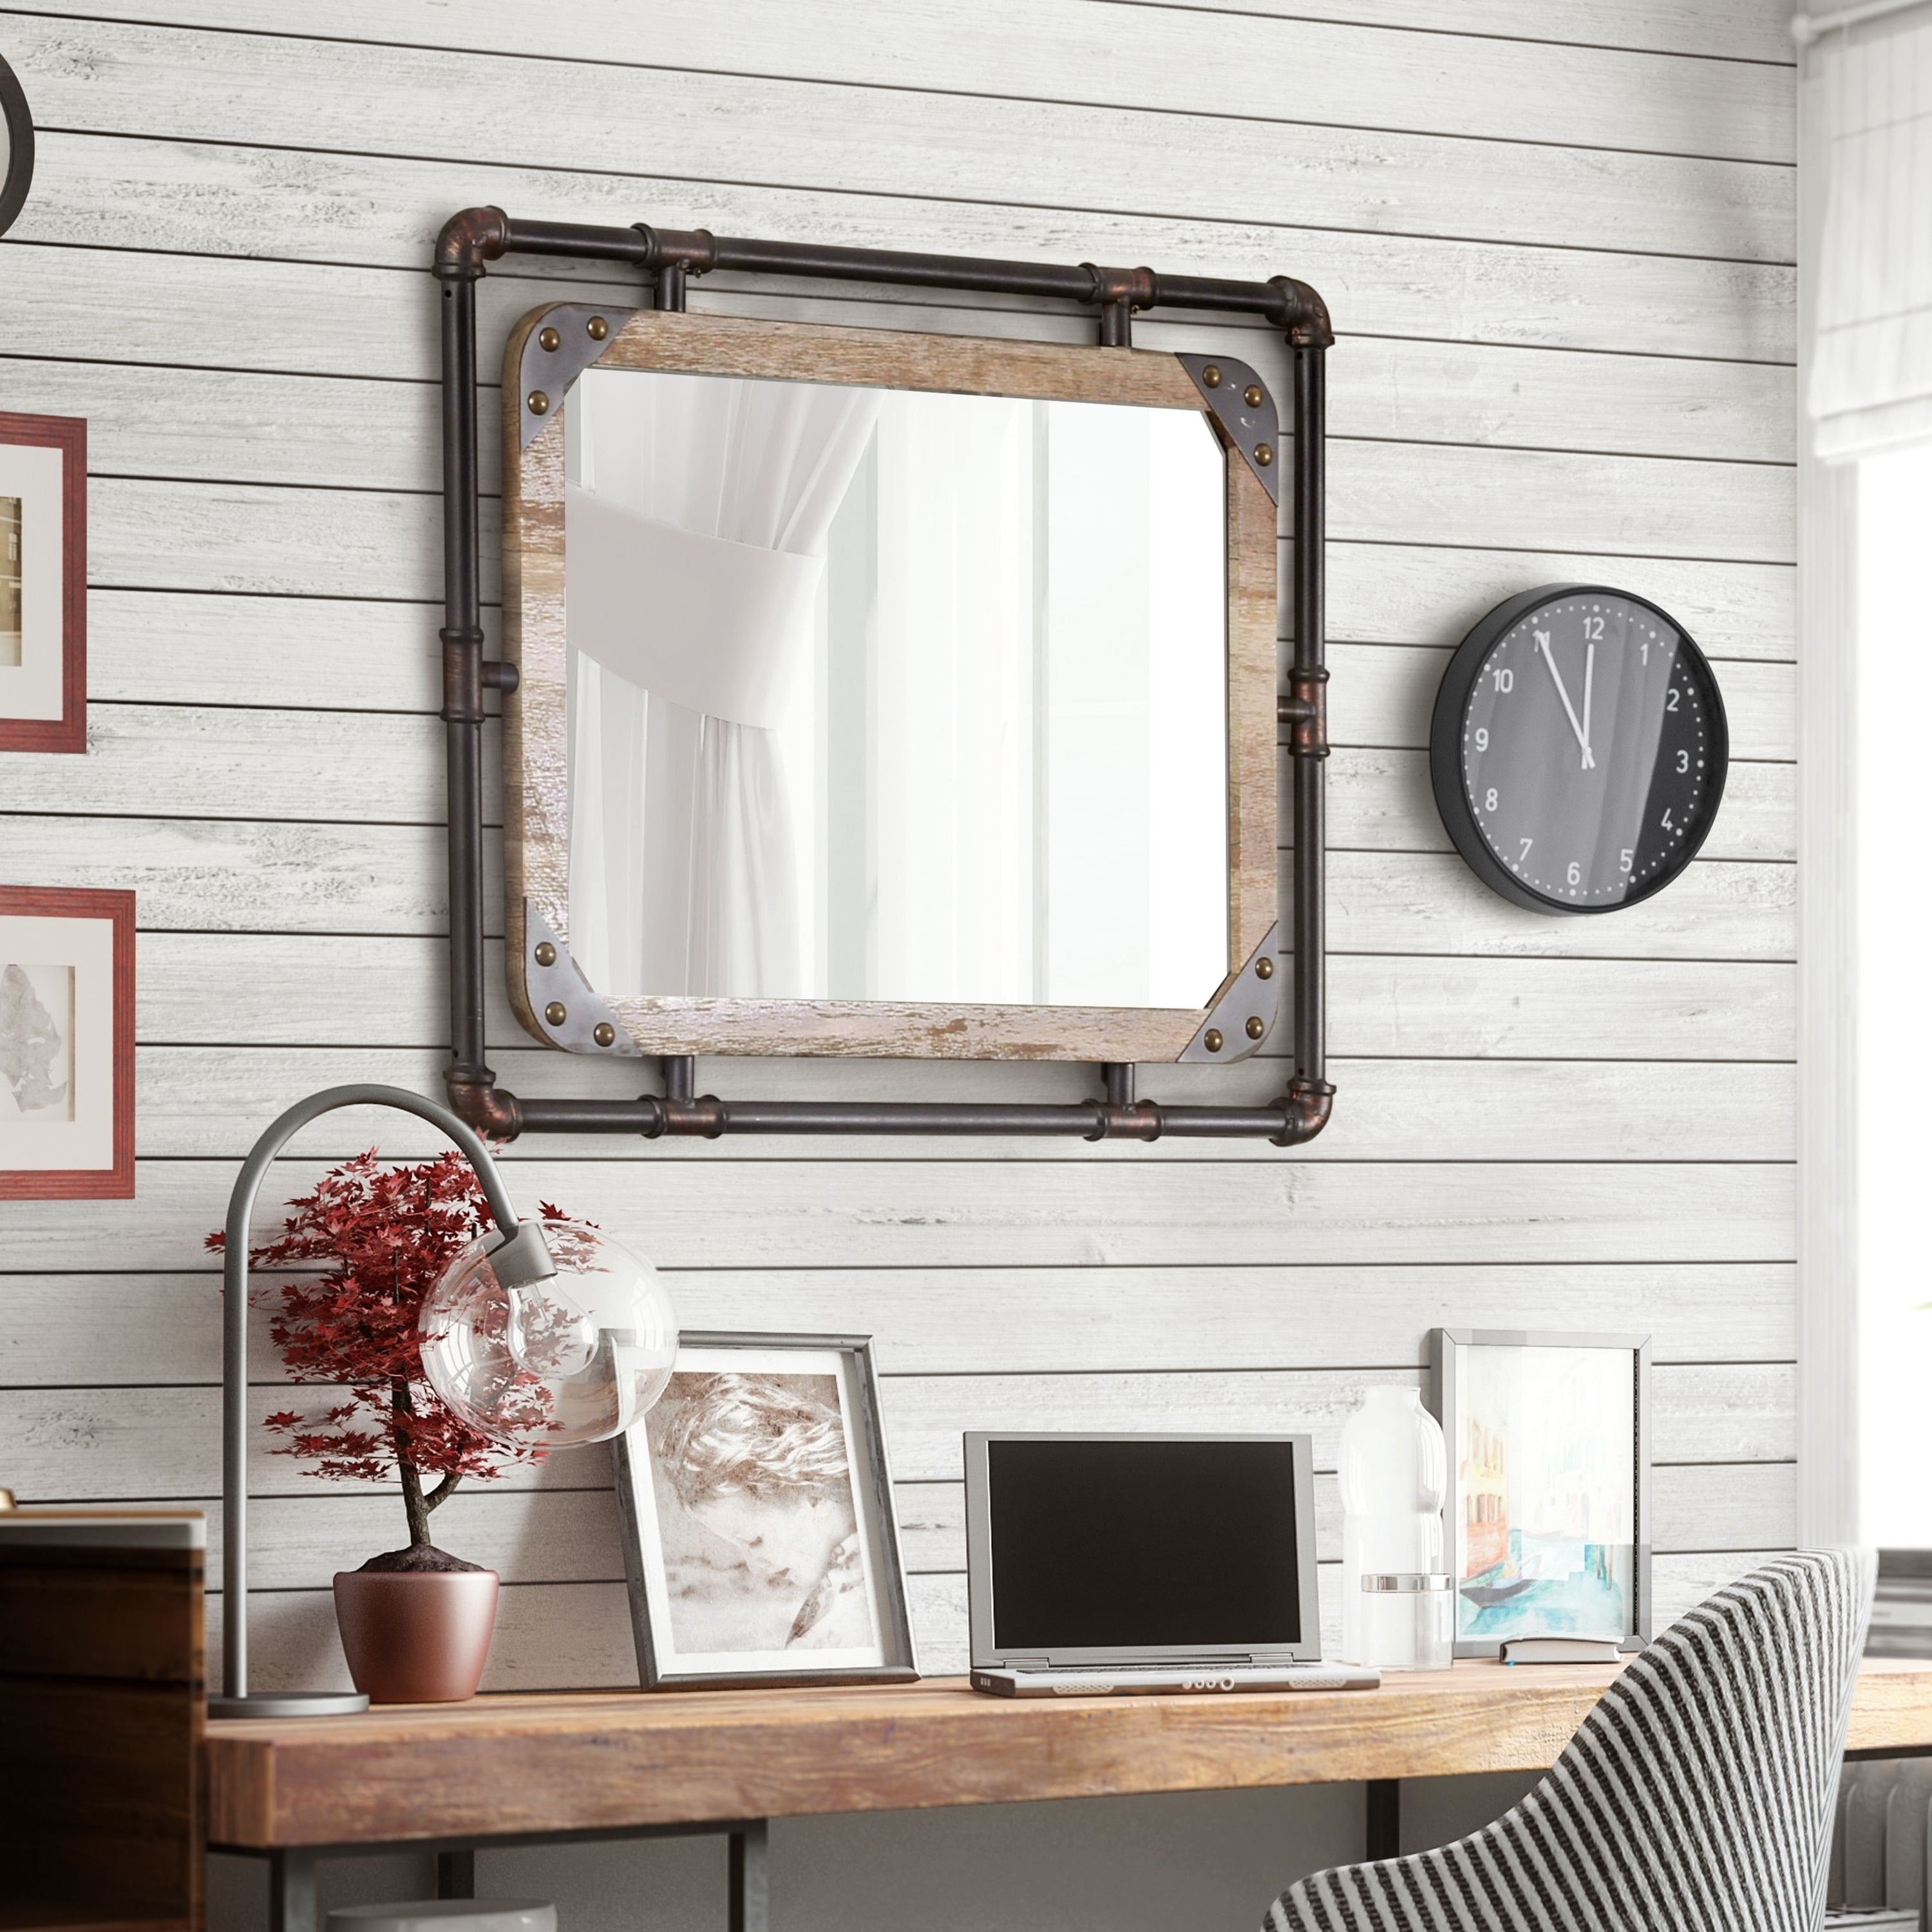 mirror for living room wall black and white design buy mirrors online at overstock our best decorative accessories deals